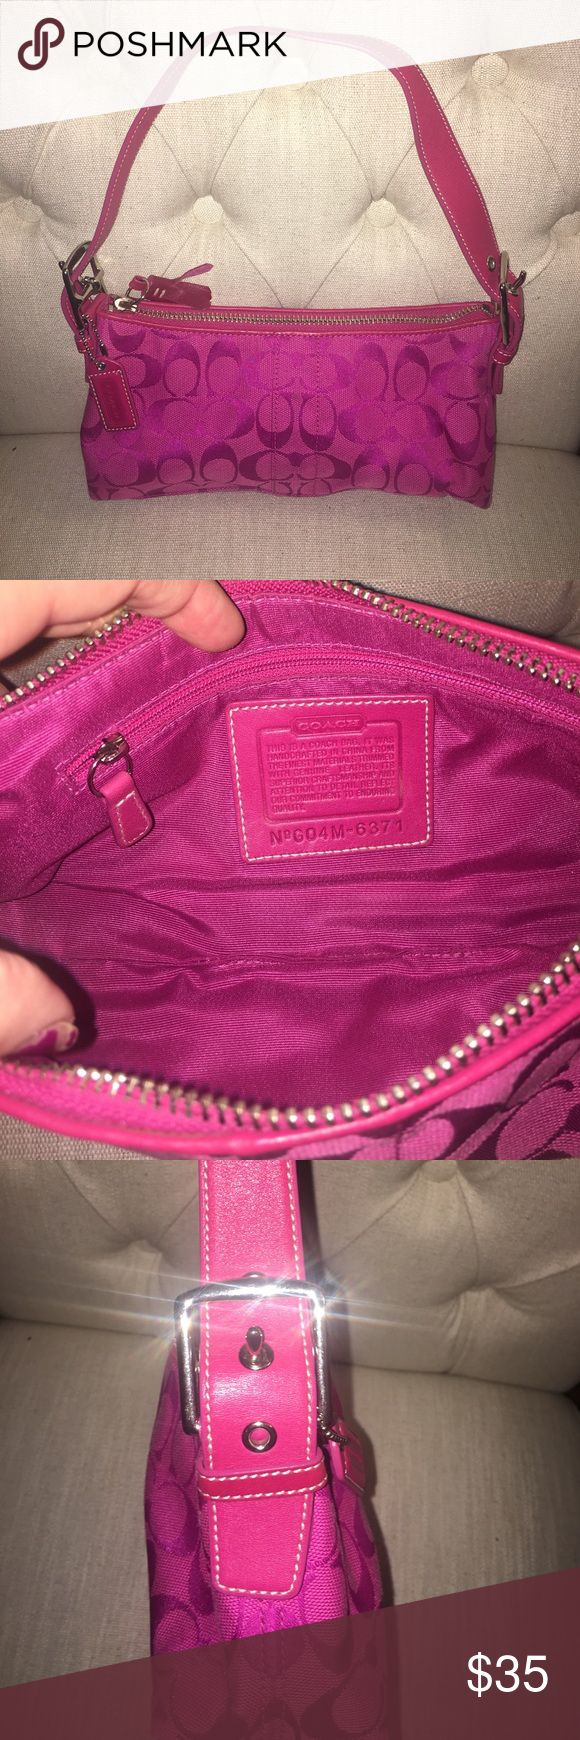 Hot Pink Coach Purse Adorable HOT Pink small Coach shoulder purse! Gently used and still in great condition. Adjustable straps on each side of purse with silver buckles. Small zipper pocket on inside of purse. No scratches on buckles or leather strap. The perfect color for the upcoming Spring and a Summer seasons! Coach Bags Mini Bags